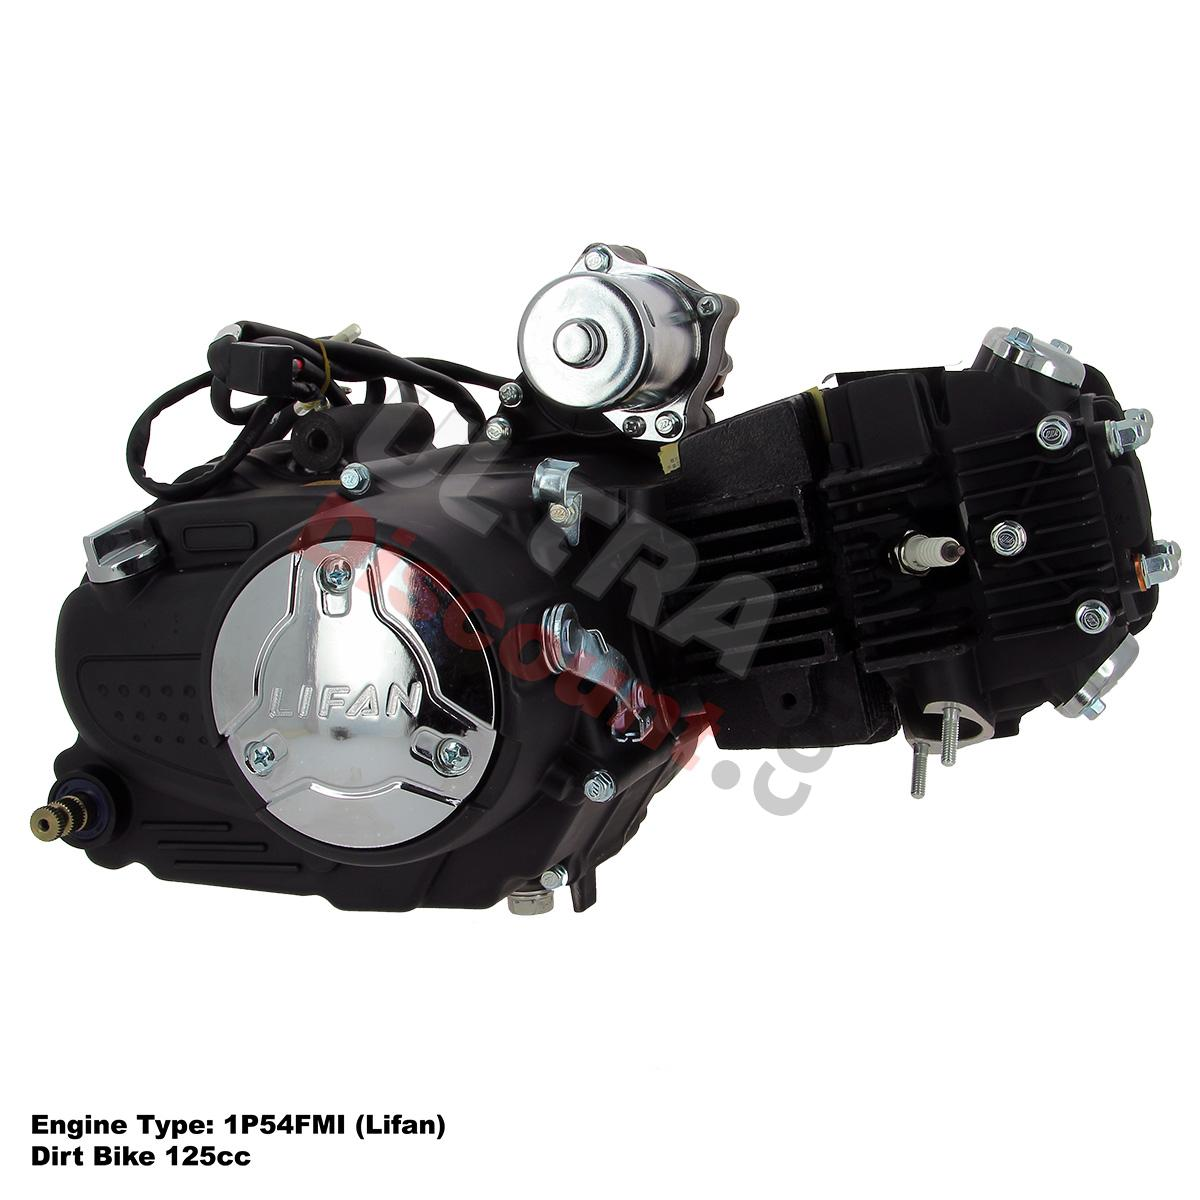 lifan engine 125cc 1p54fmi for dirt bike engine 107cc 110cc 125cc dirt bike dirt bike. Black Bedroom Furniture Sets. Home Design Ideas